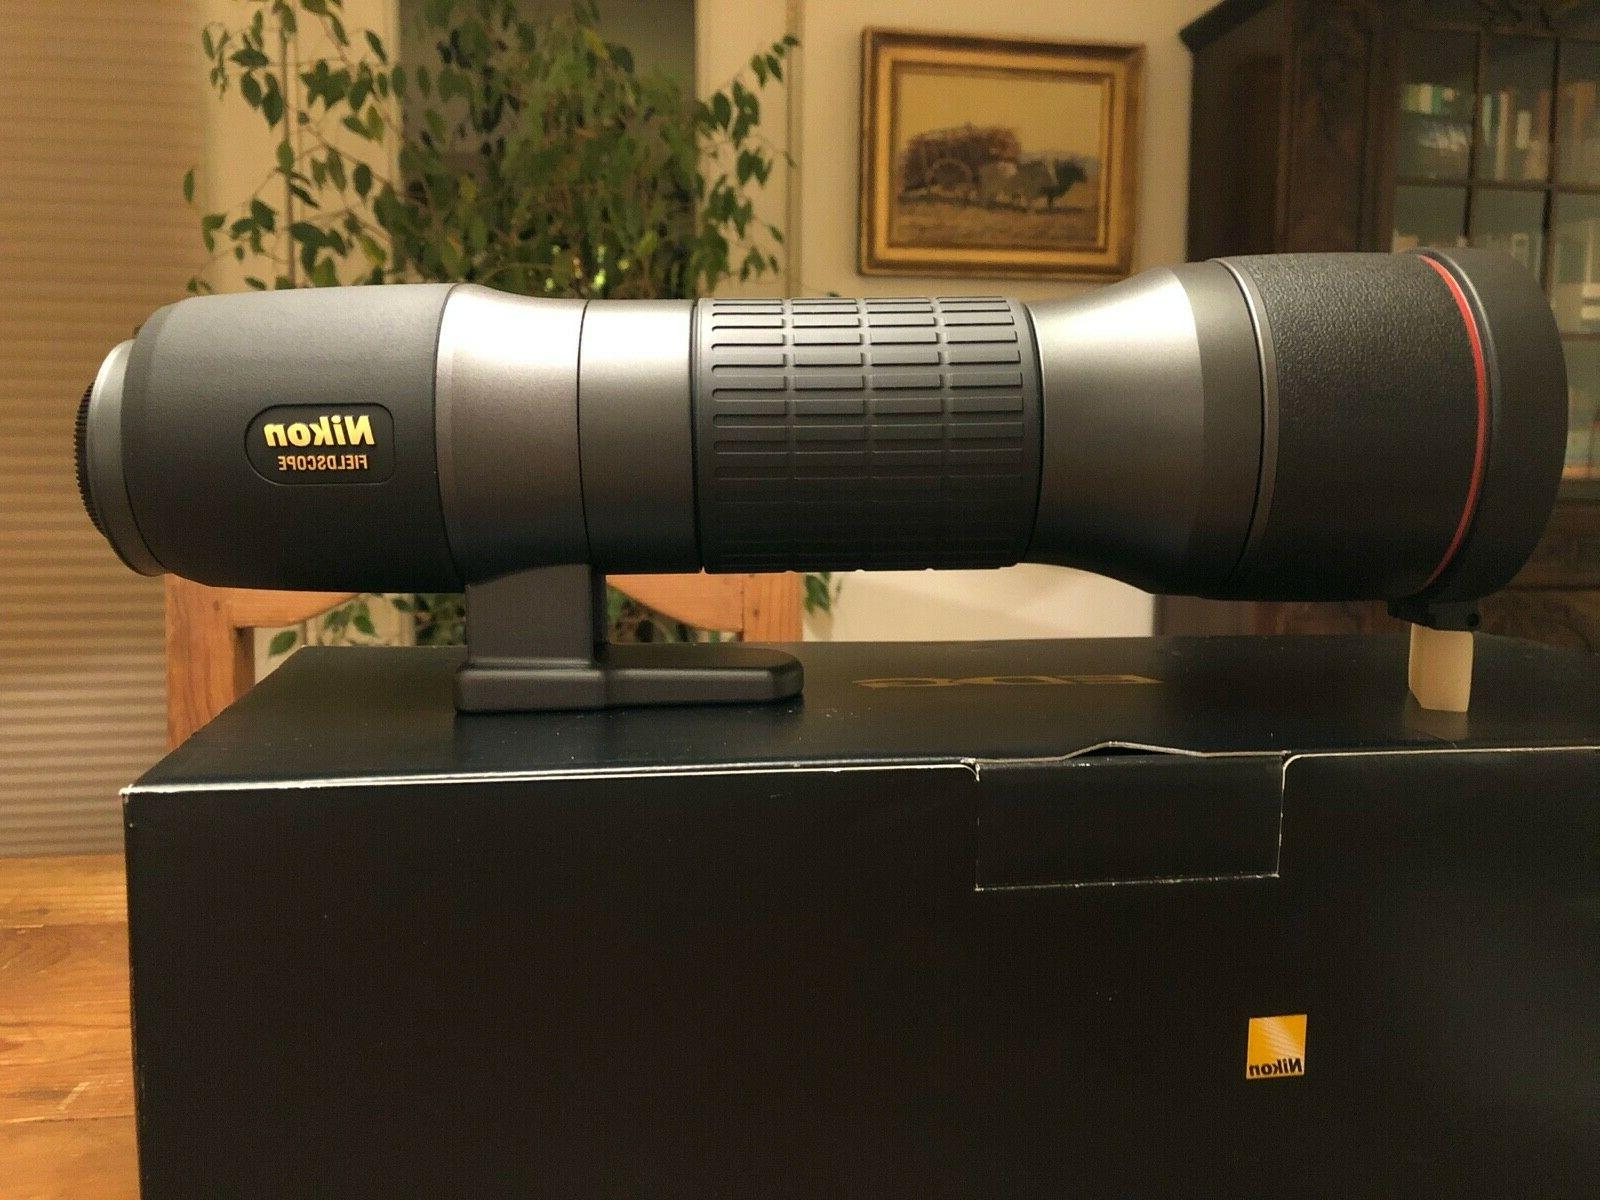 Nikon Spotting Scope with 6 Eyepieces - Complete Set